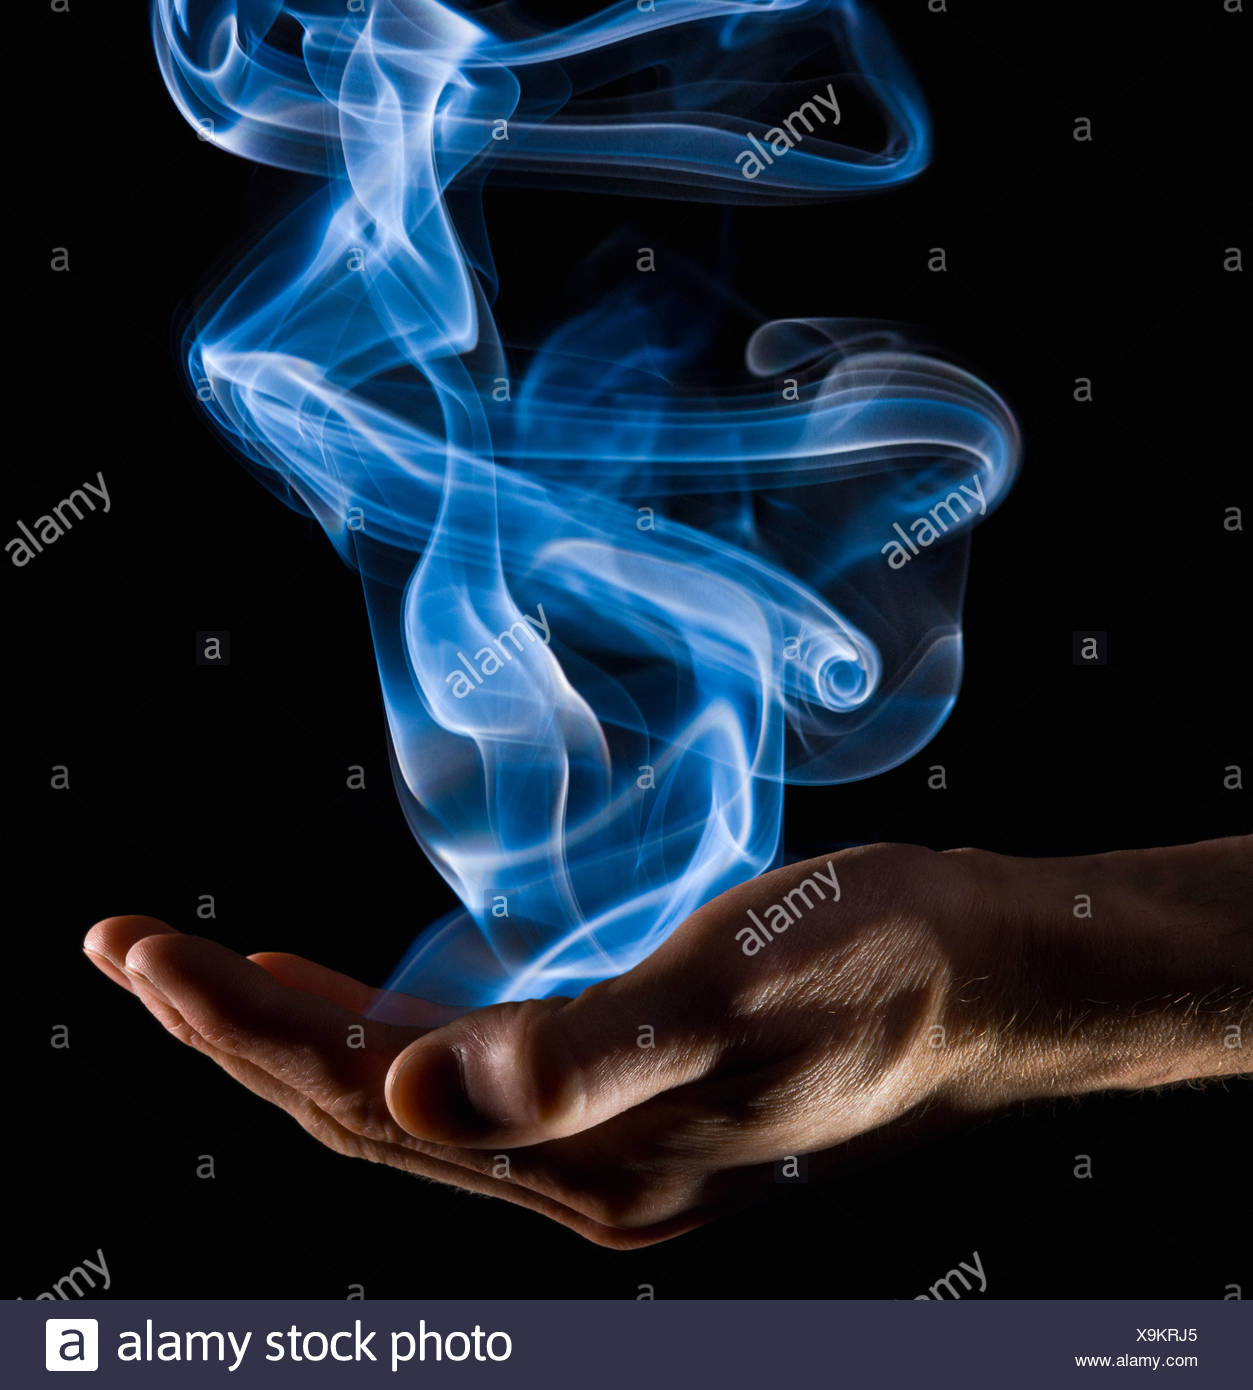 Smoke rising from a hand - Stock Image